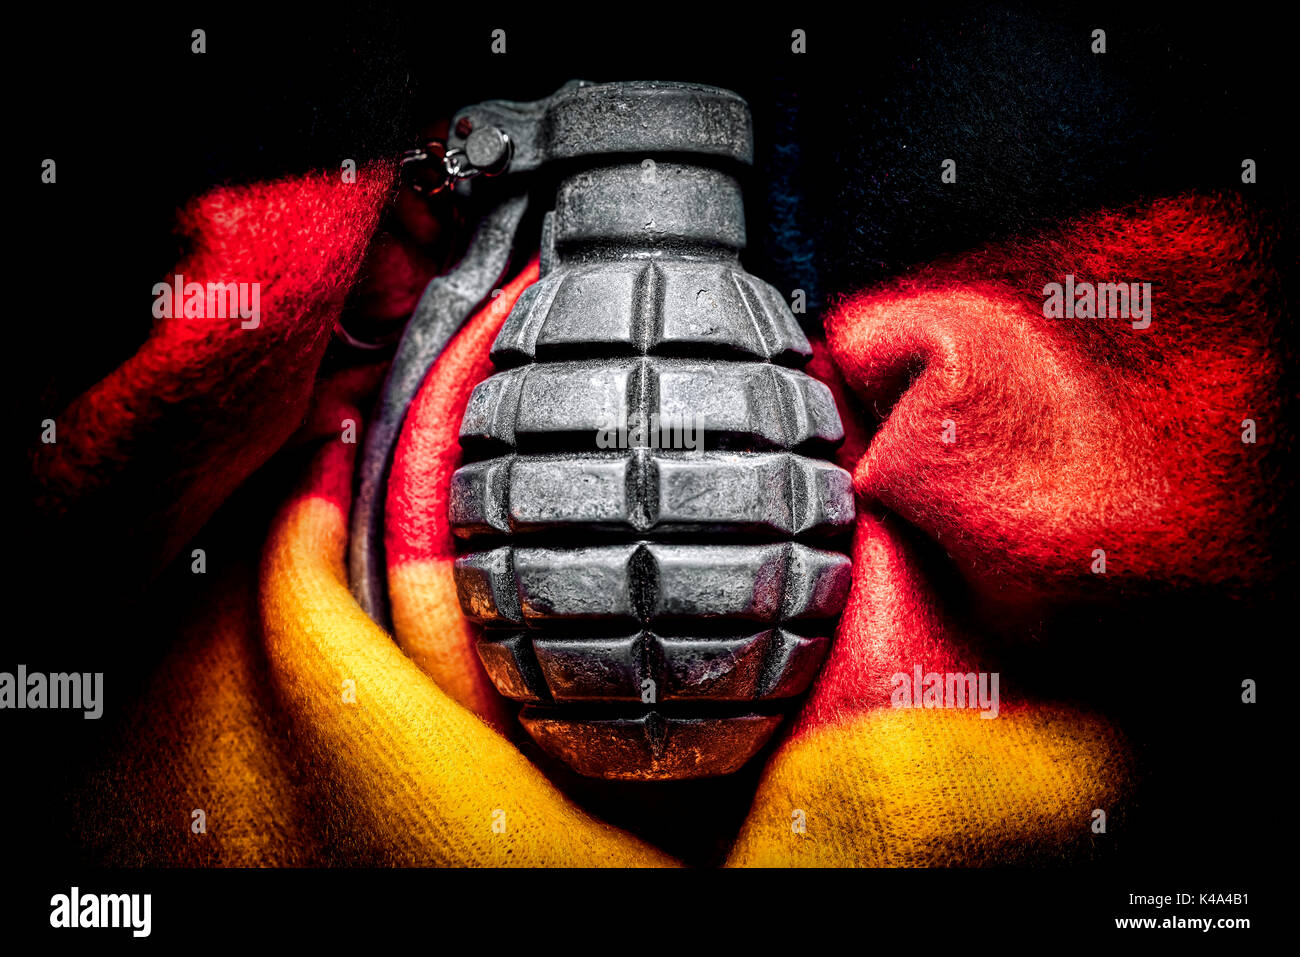 Hand Grenade In Front Of The Flag Of Germany, Extremism Threat - Stock Image